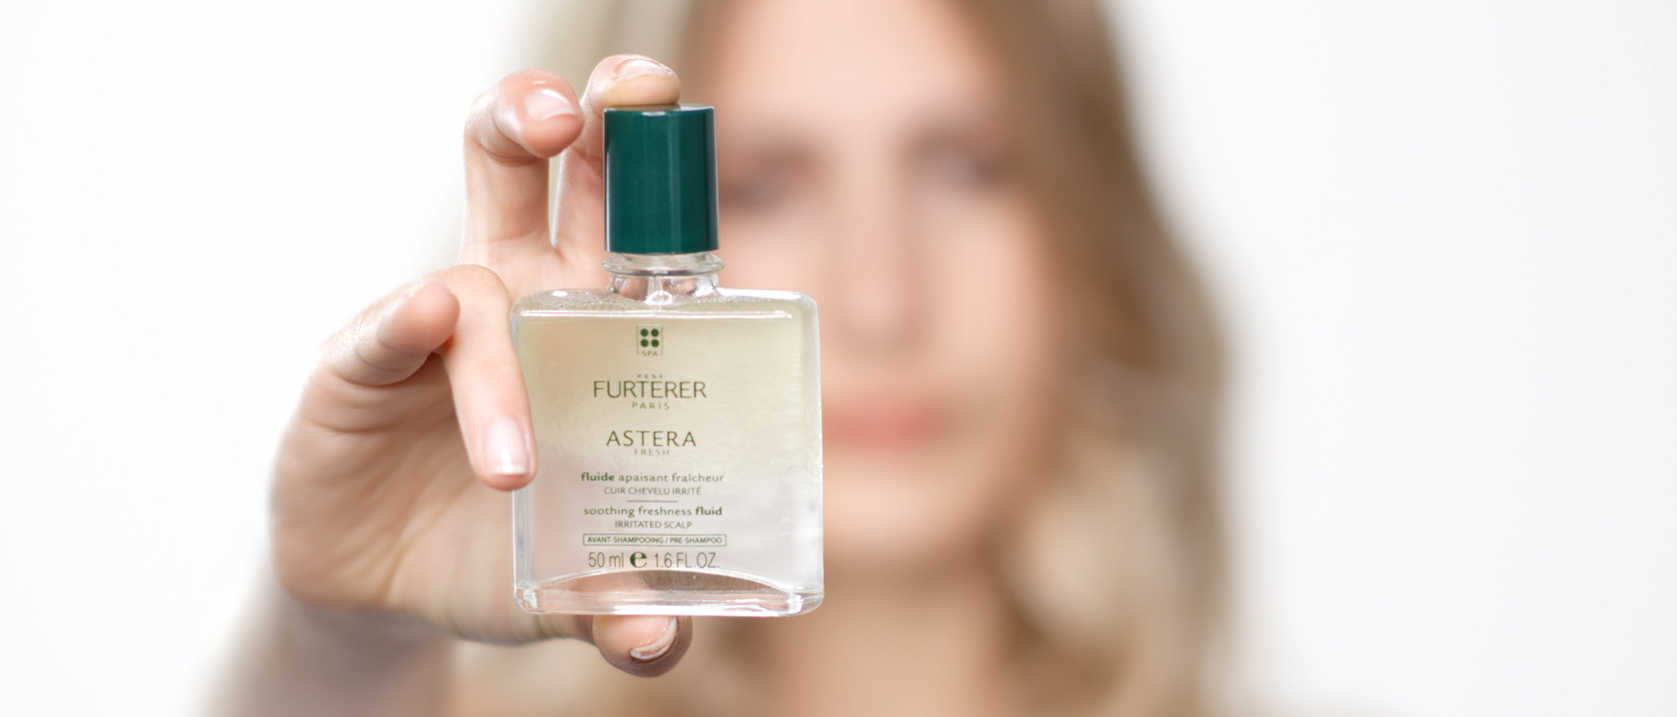 ASTERA FRESH Soothing freshness fluid application video | René Furterer